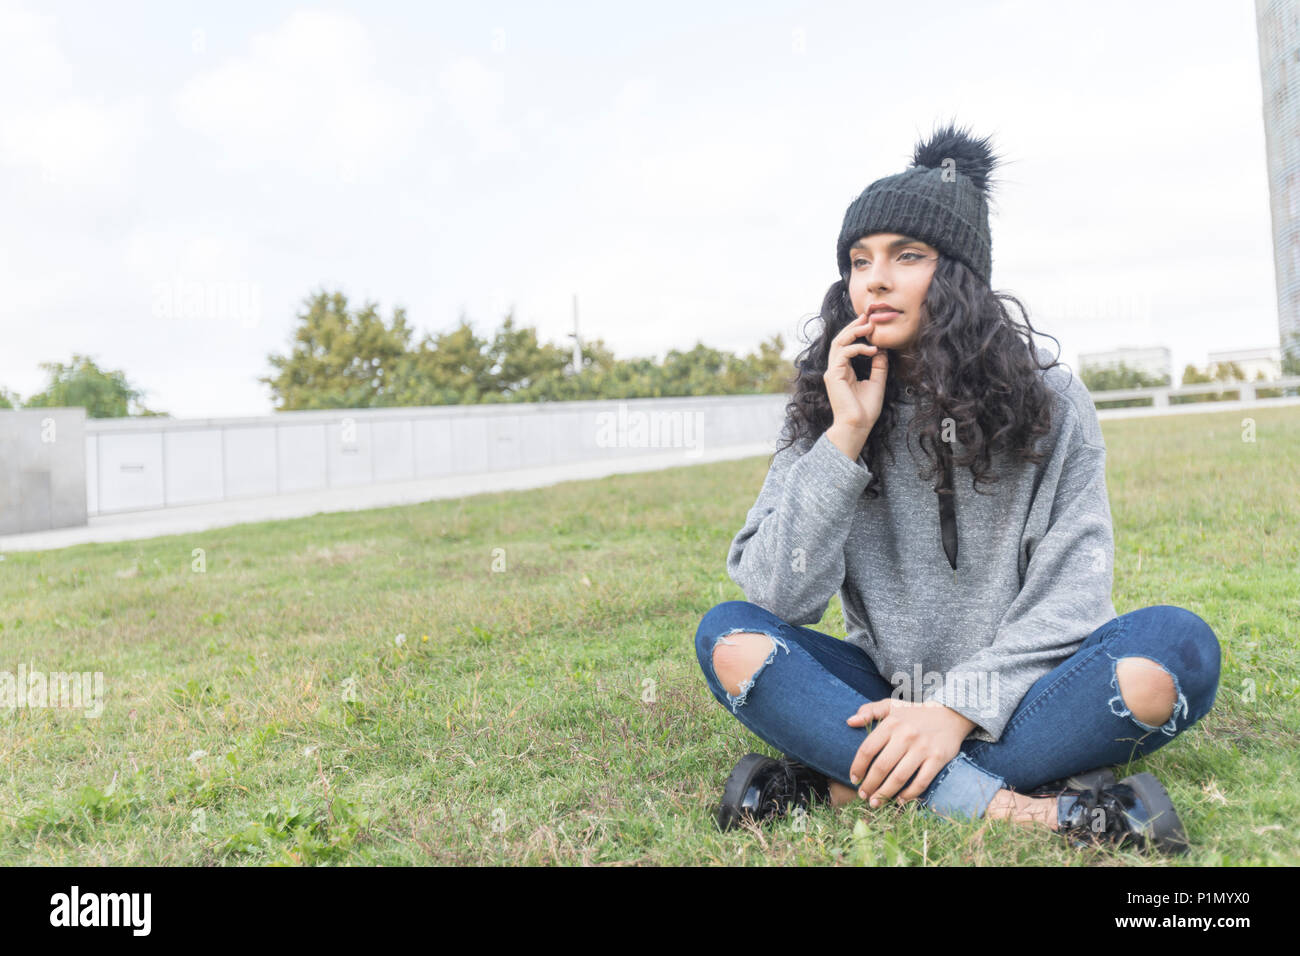 portrait of a woman with wool cap and sweater sitting on a grass garden - Stock Image